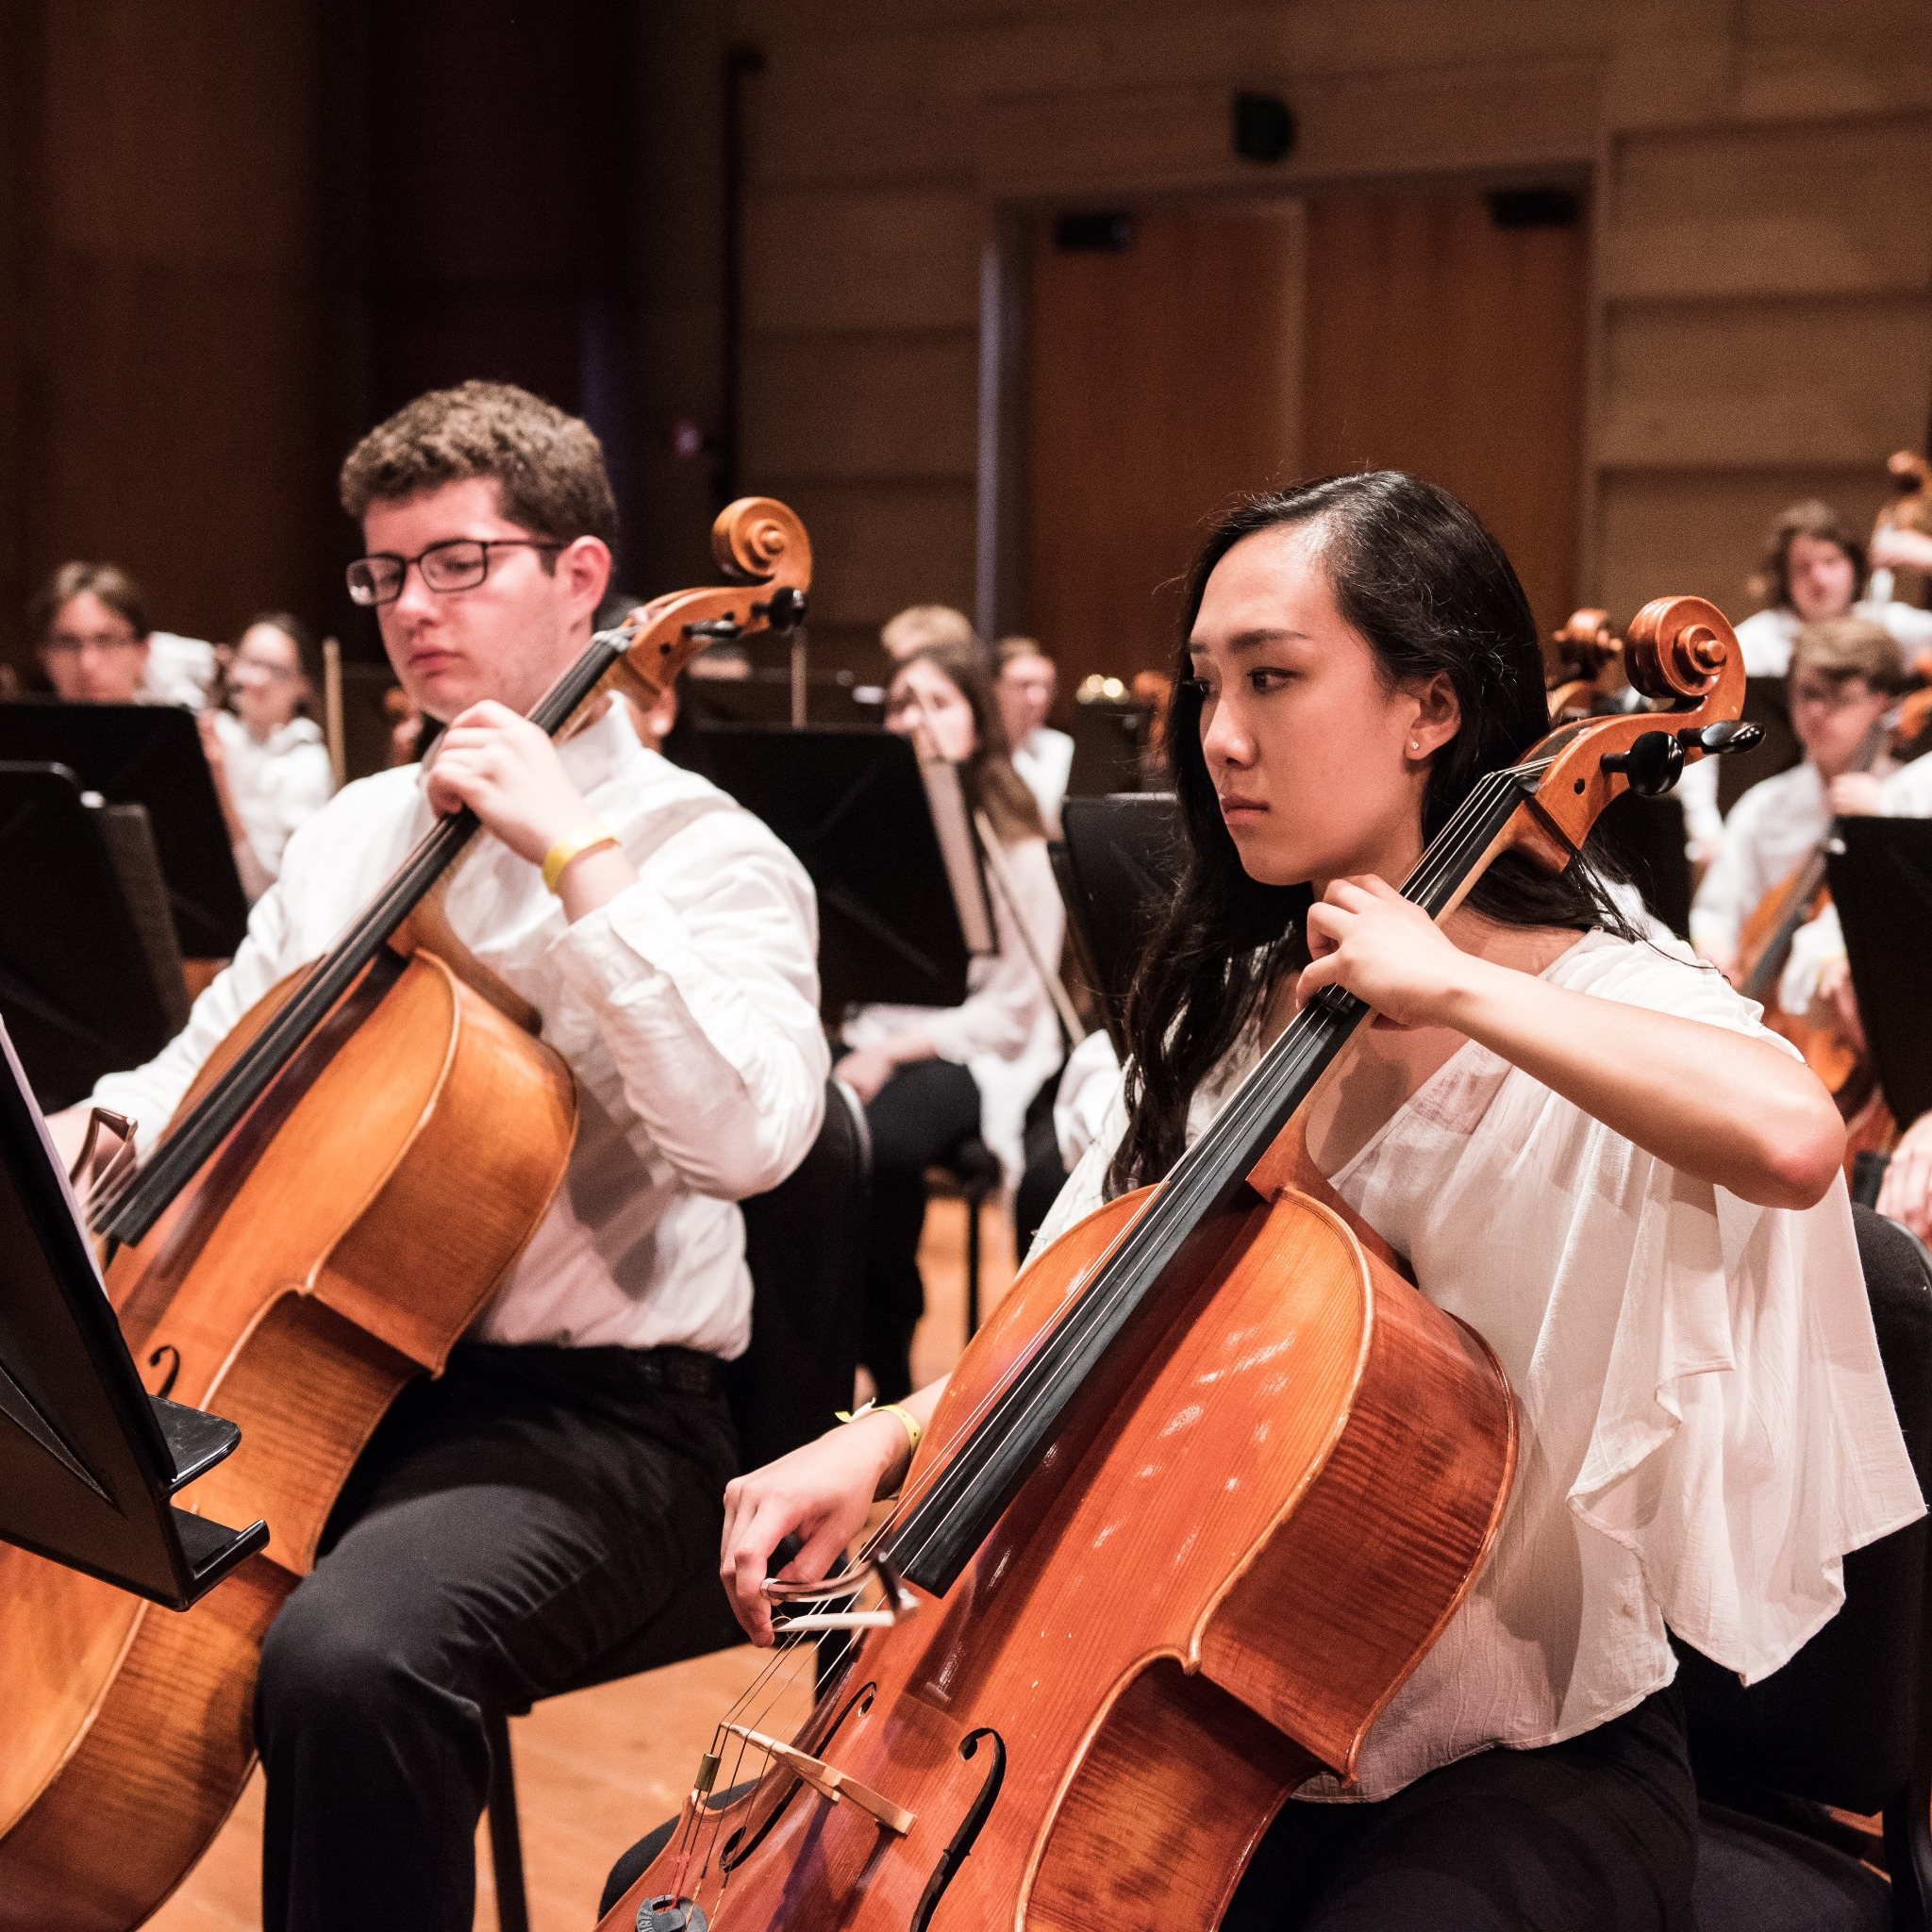 OSAI 2018 Institute Orchestra Performances – Video